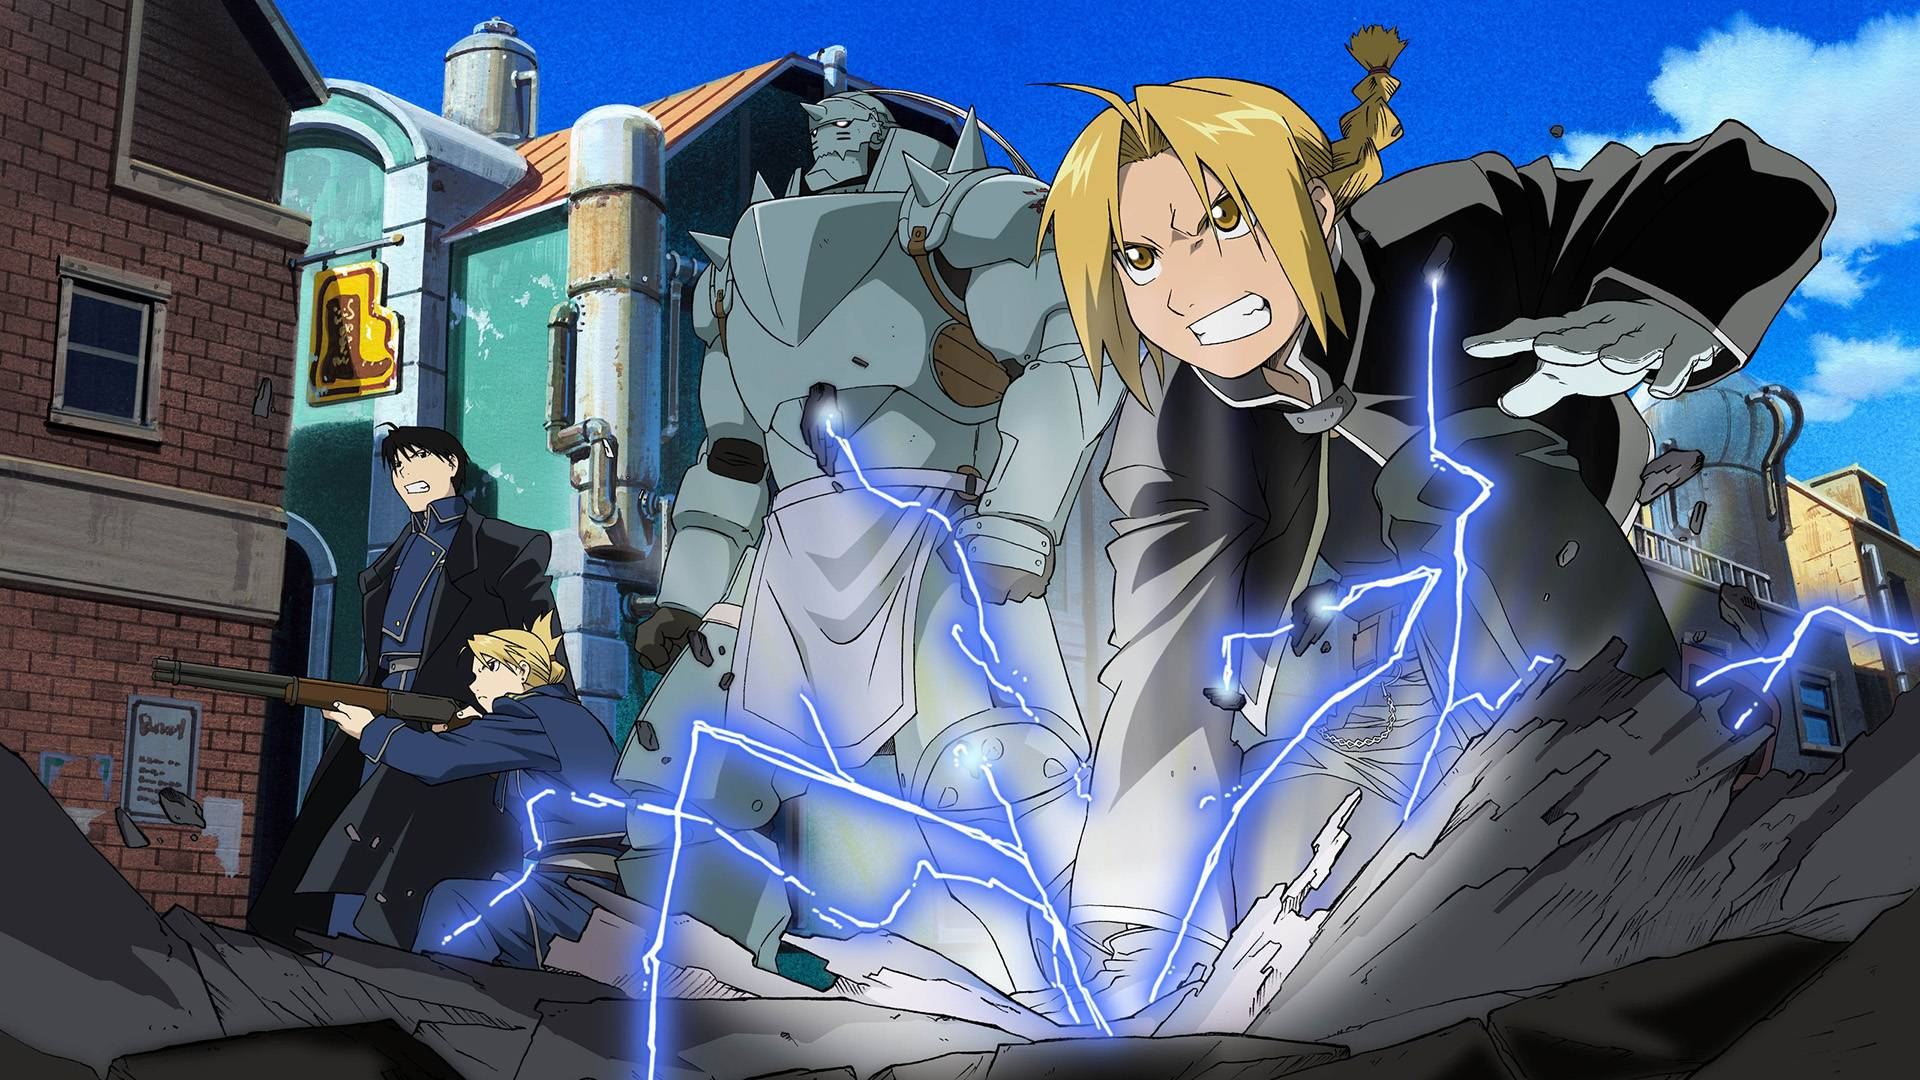 Japan's Making a Live-Action Fullmetal Alchemist Movie All of a Sudden